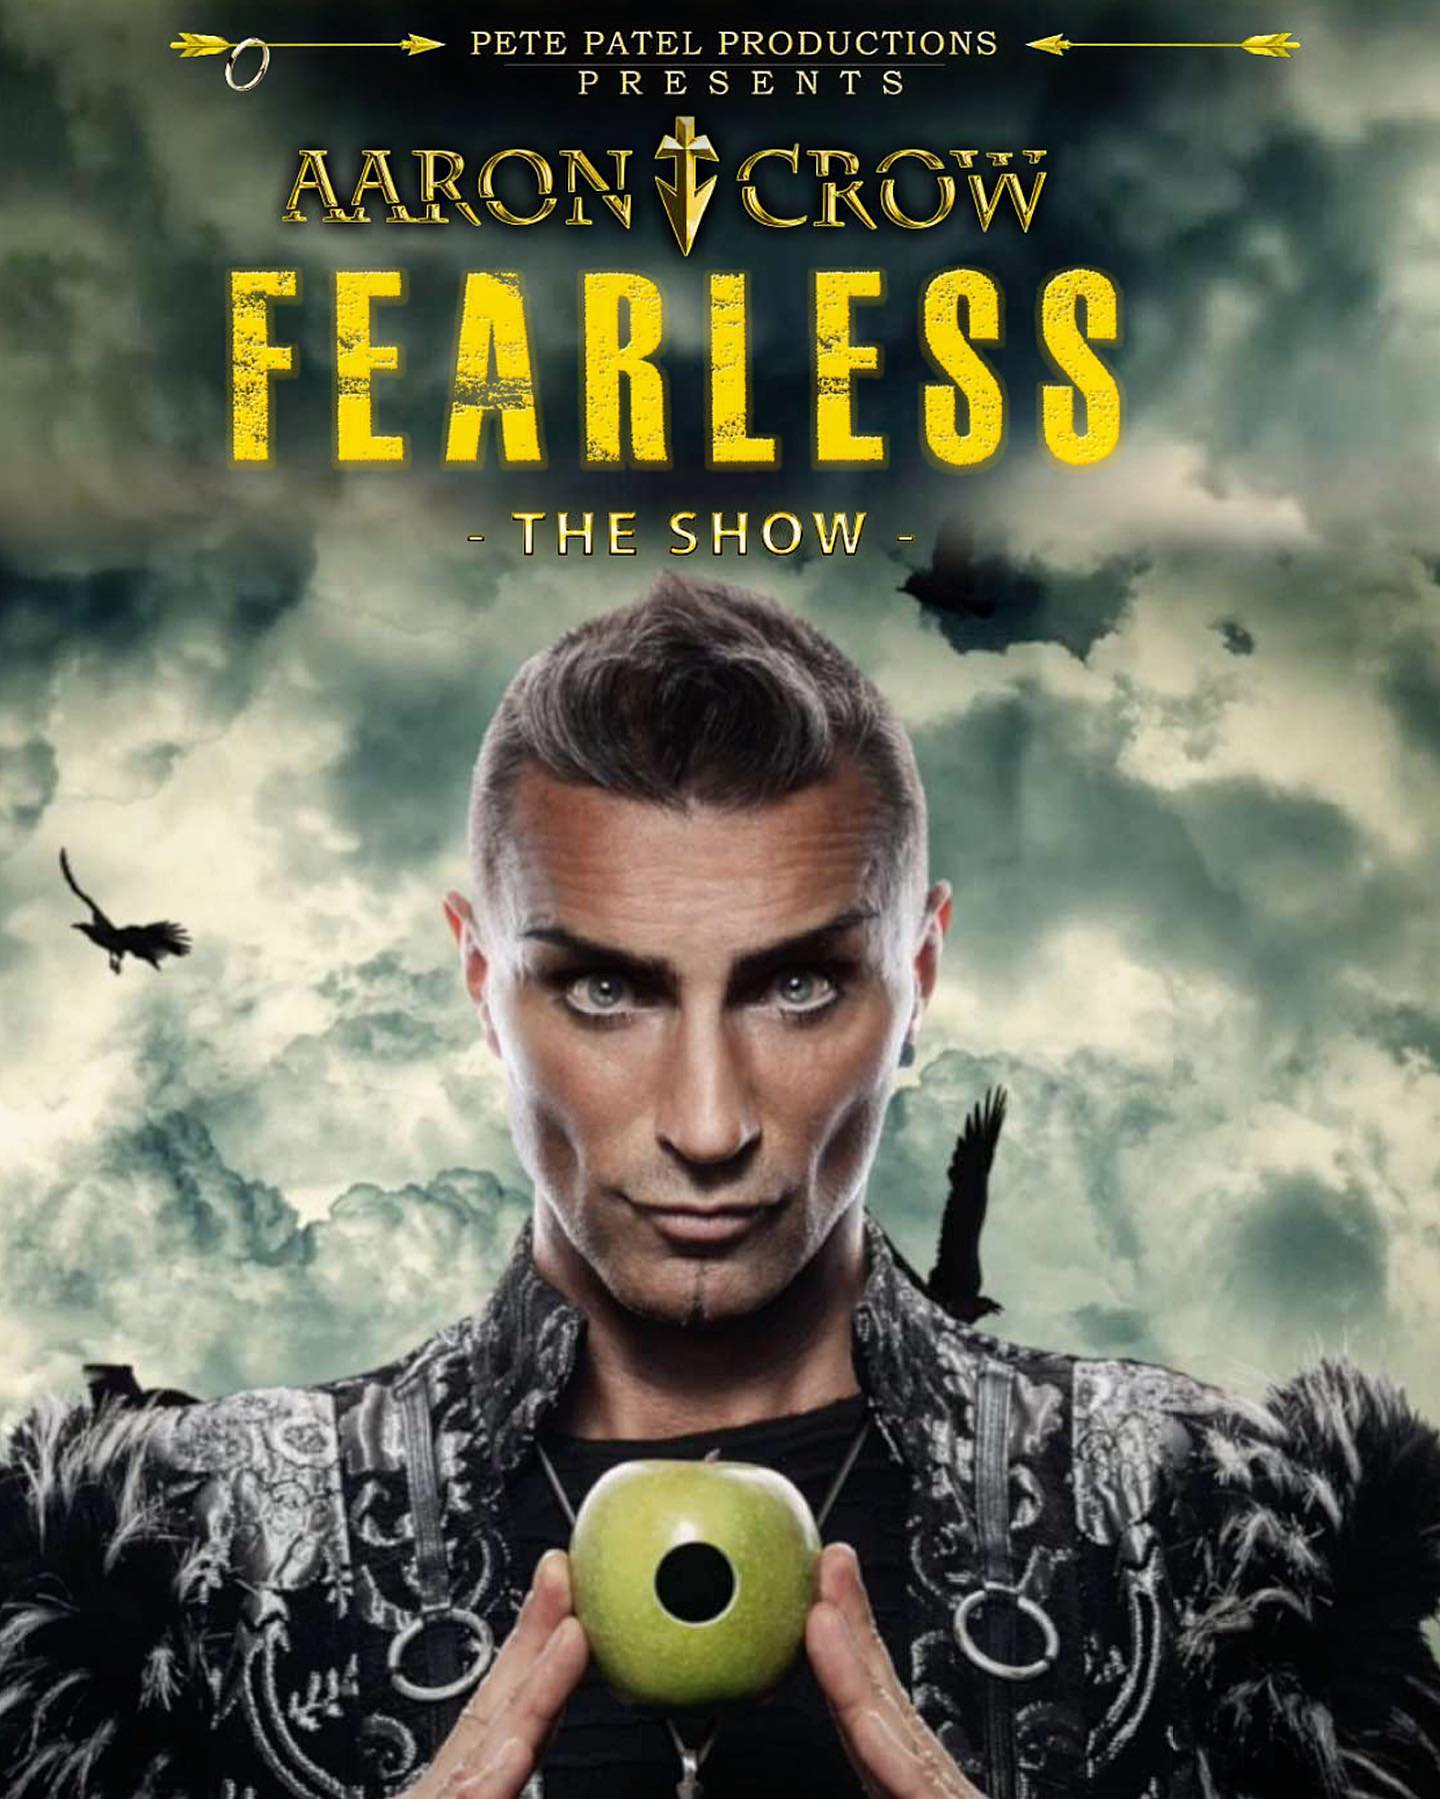 Aaron Crow - Fearless